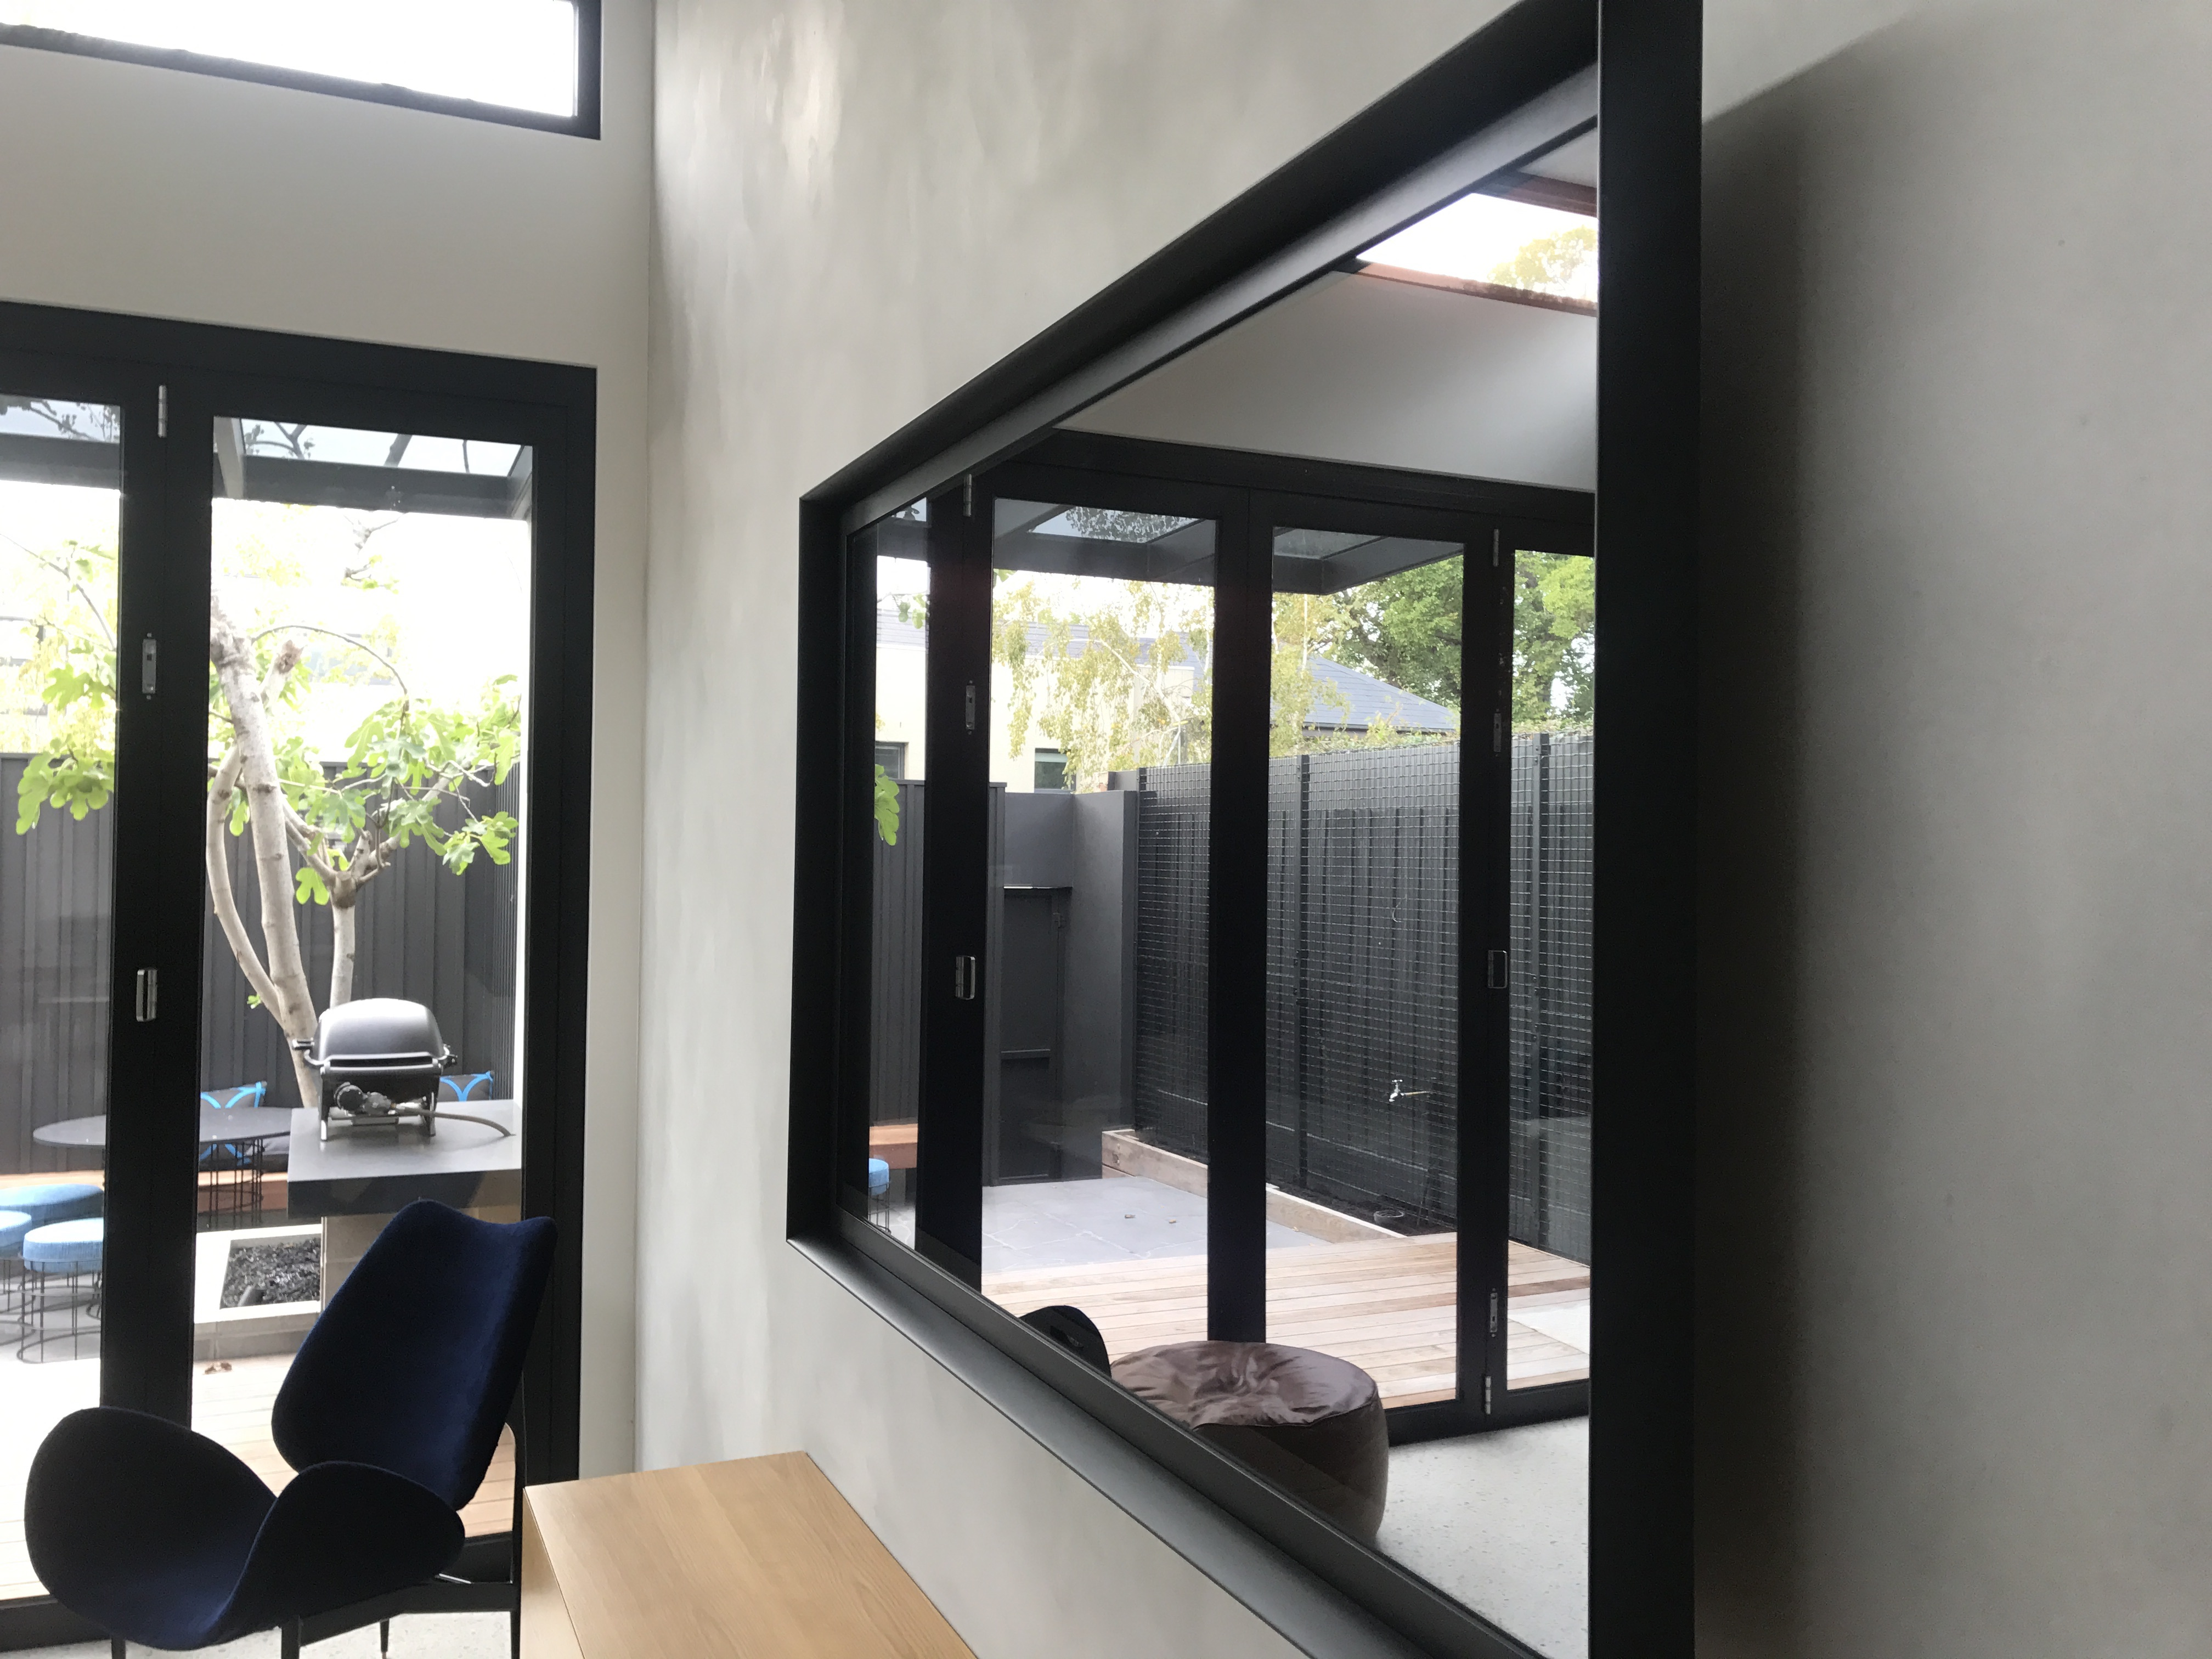 Mirror Tv Frame #1 (Tv Guy) Slim Line two way glass 0418504488